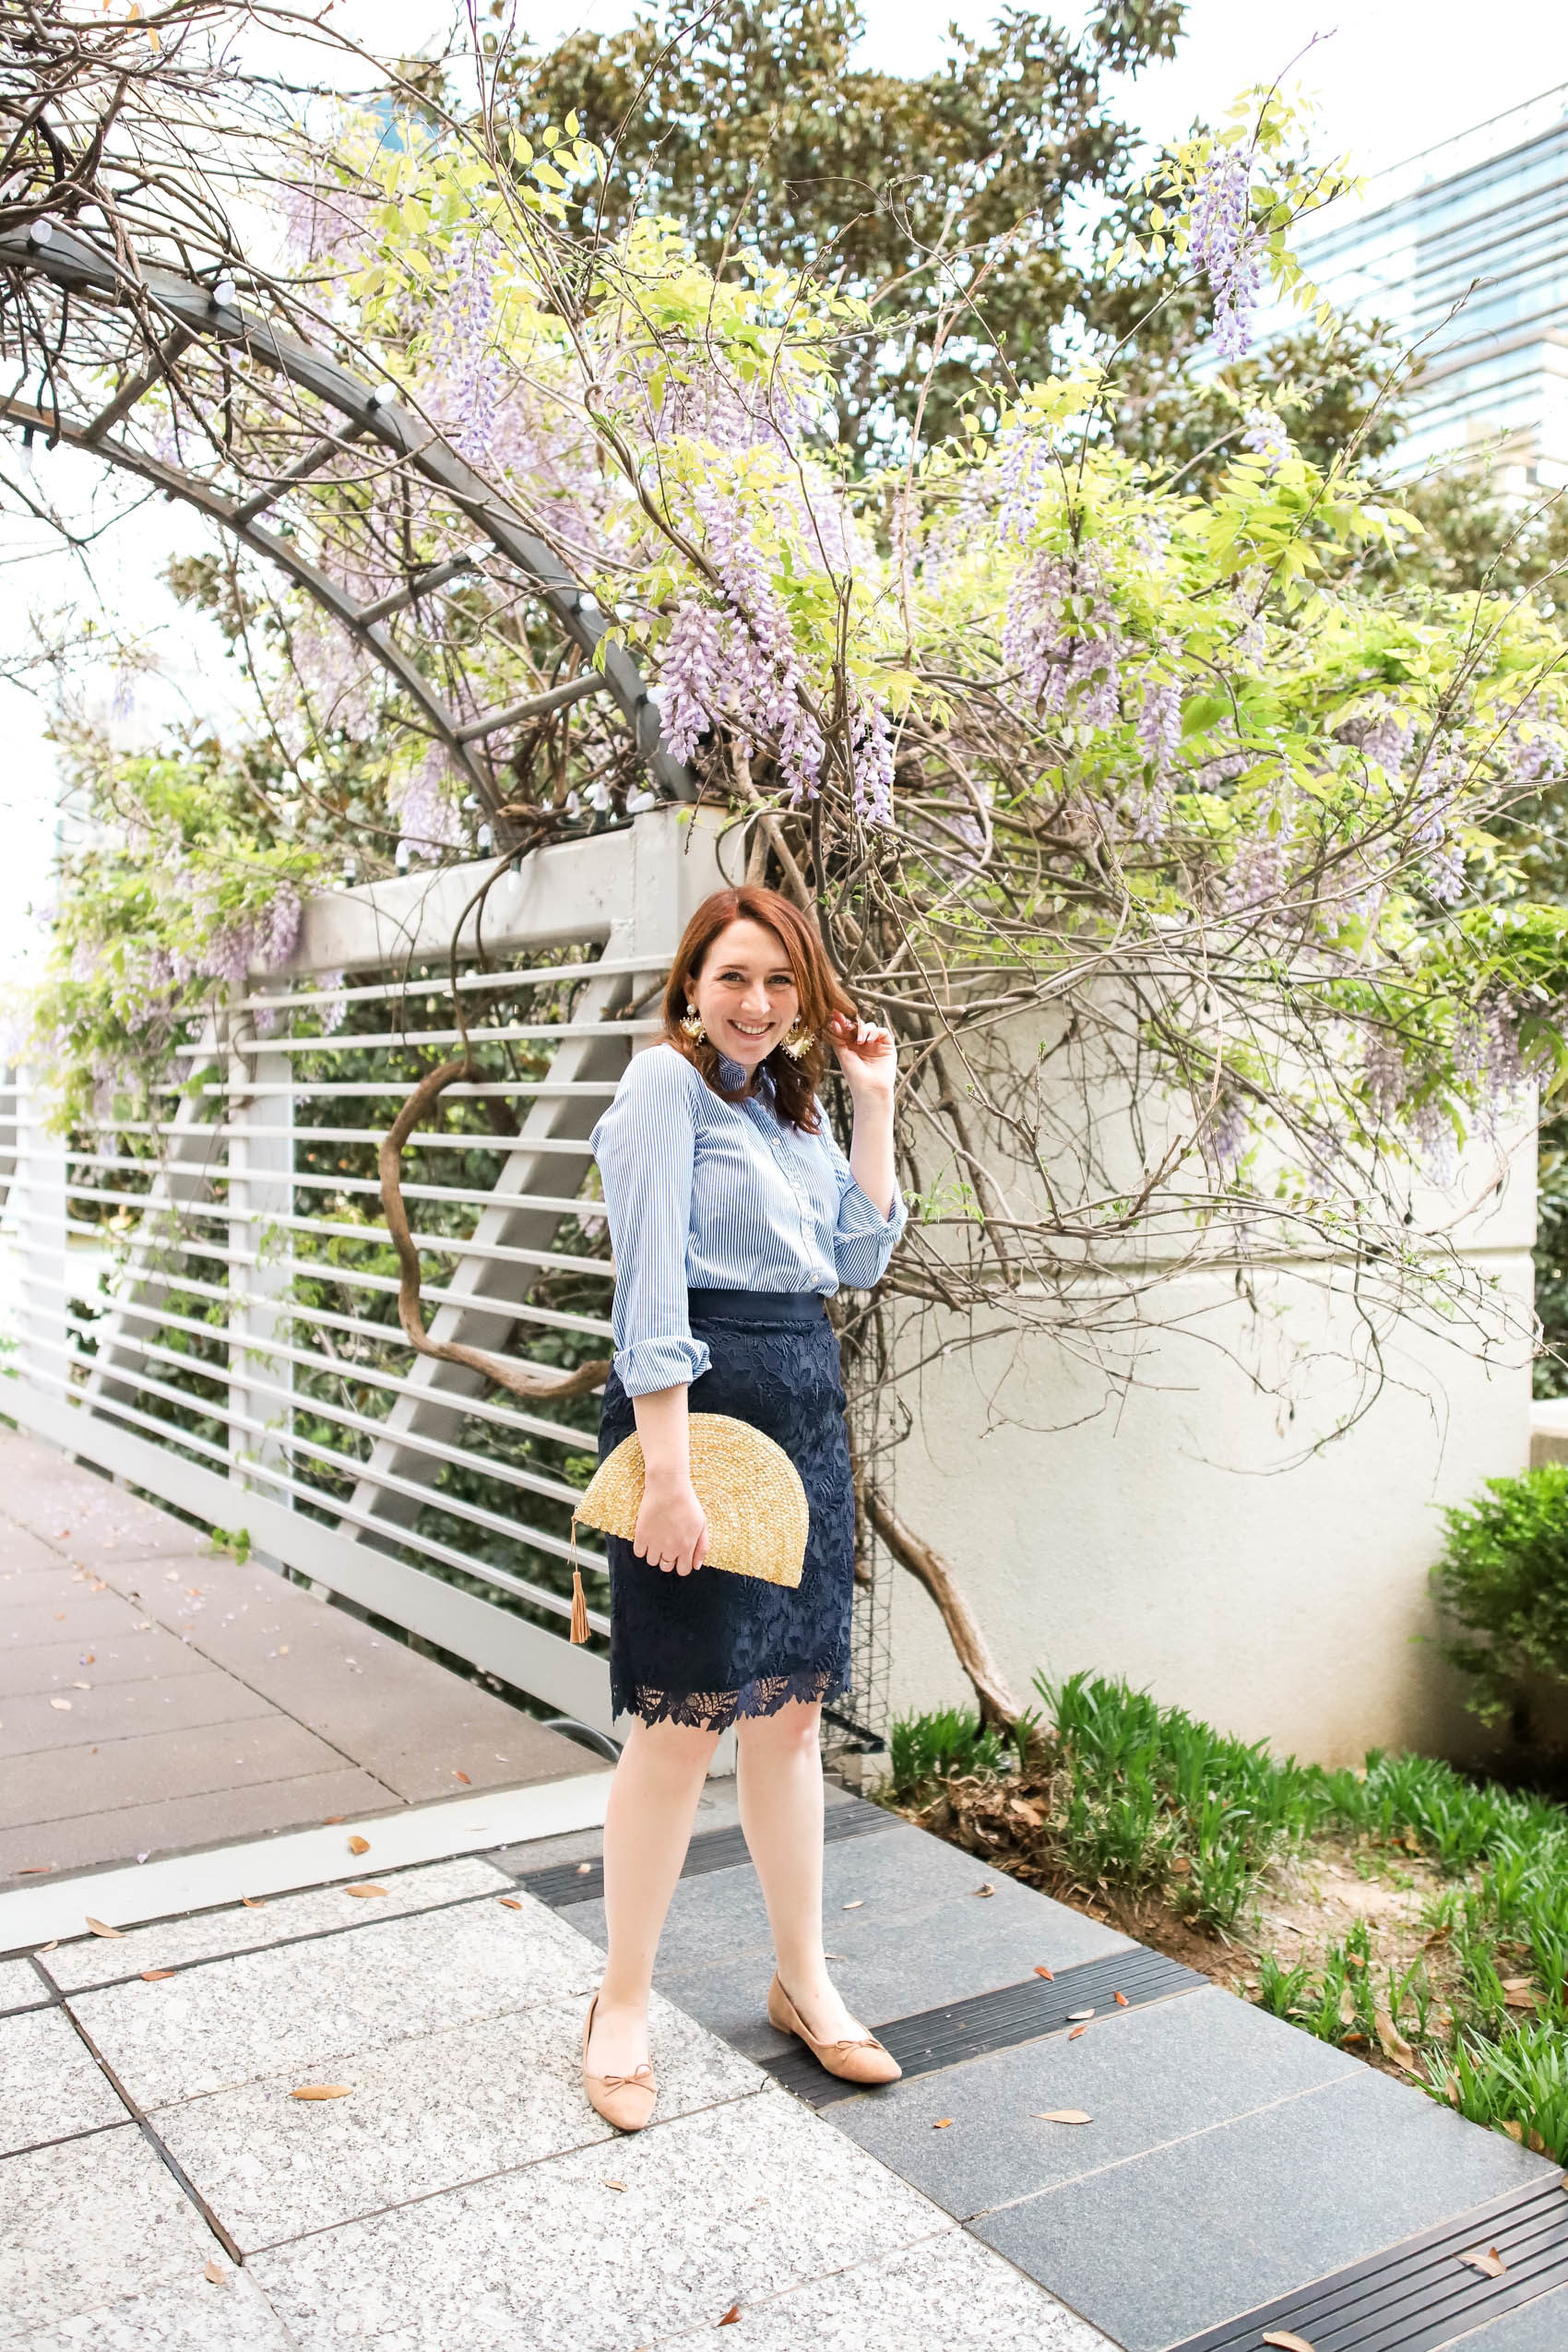 Lace Pencil Skirt and Striped Button Down | Workwear Outfit Inspiration | How to Wear Flats with a Knee-Length Skirt | What to Wear to Work this Spring in Dallas